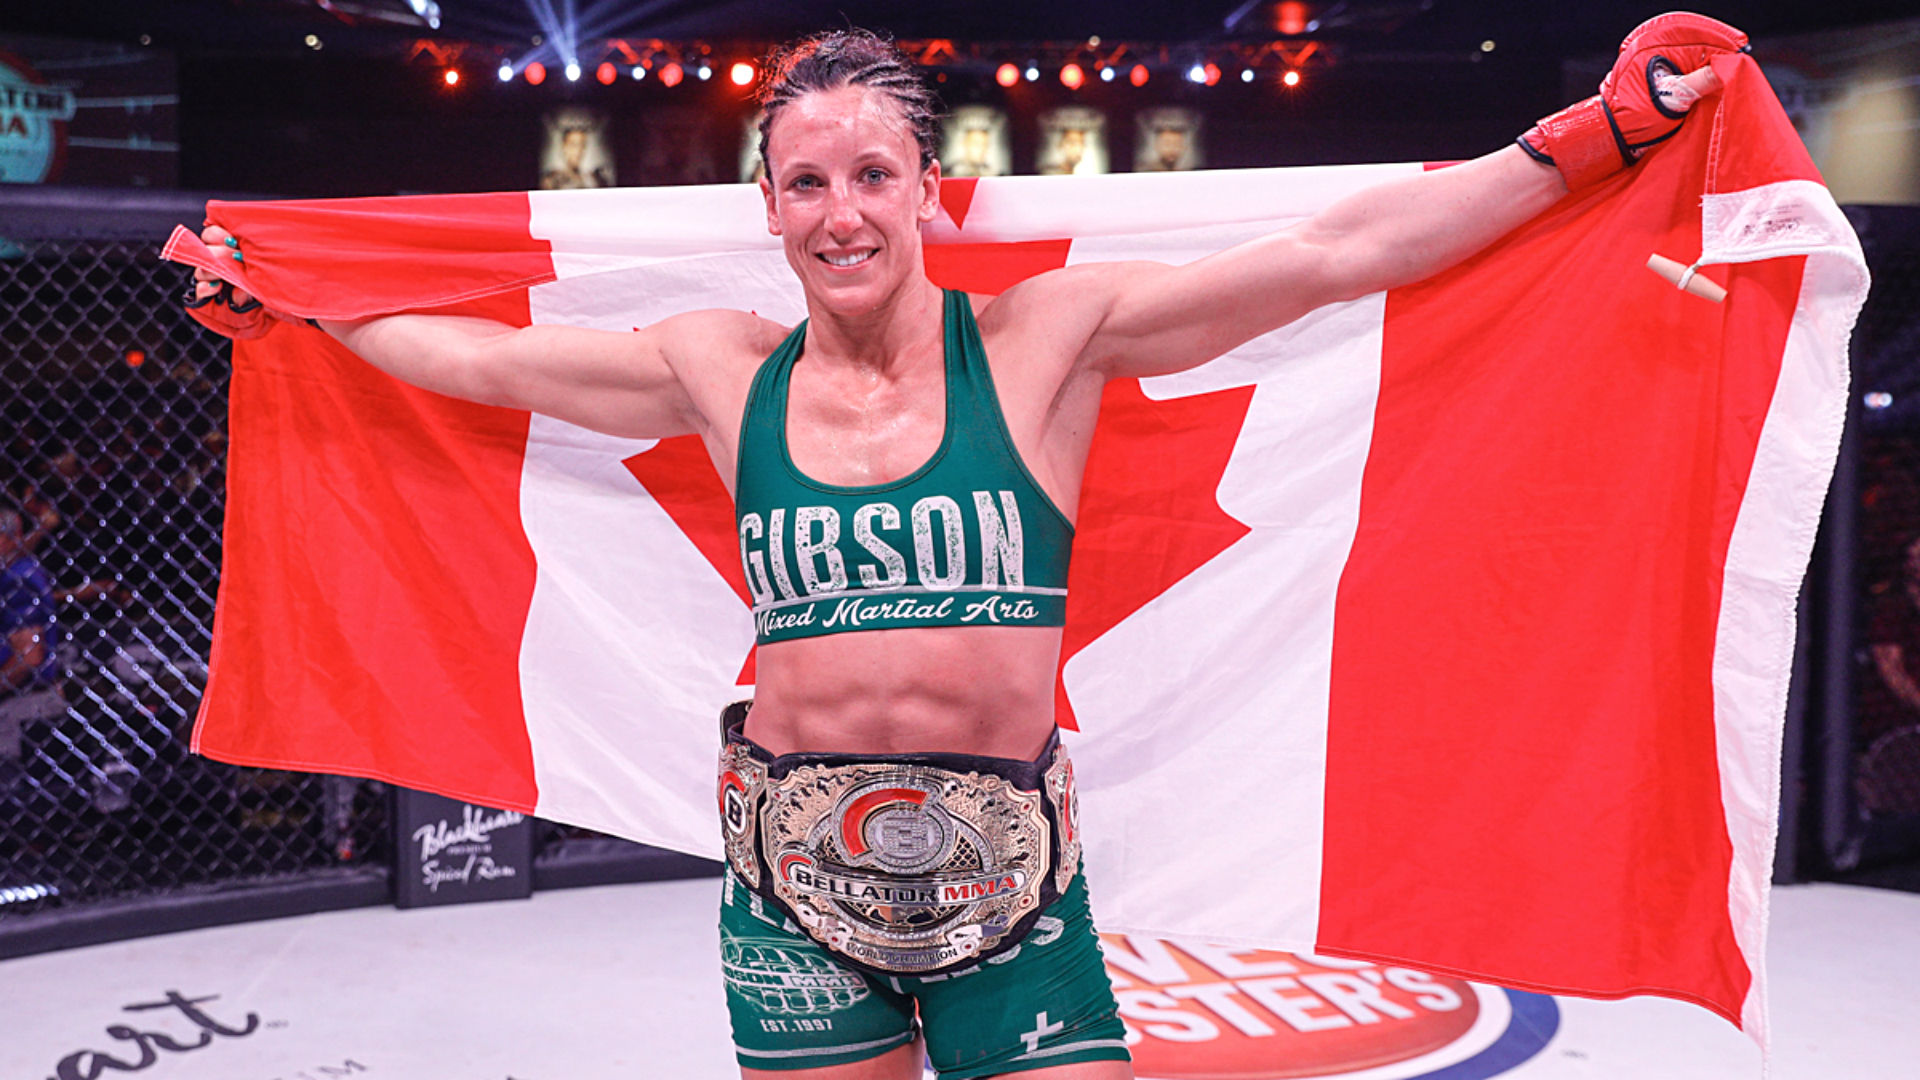 Bellator 224: Julia Budd excited to start next chapter and has plans to retire as champion